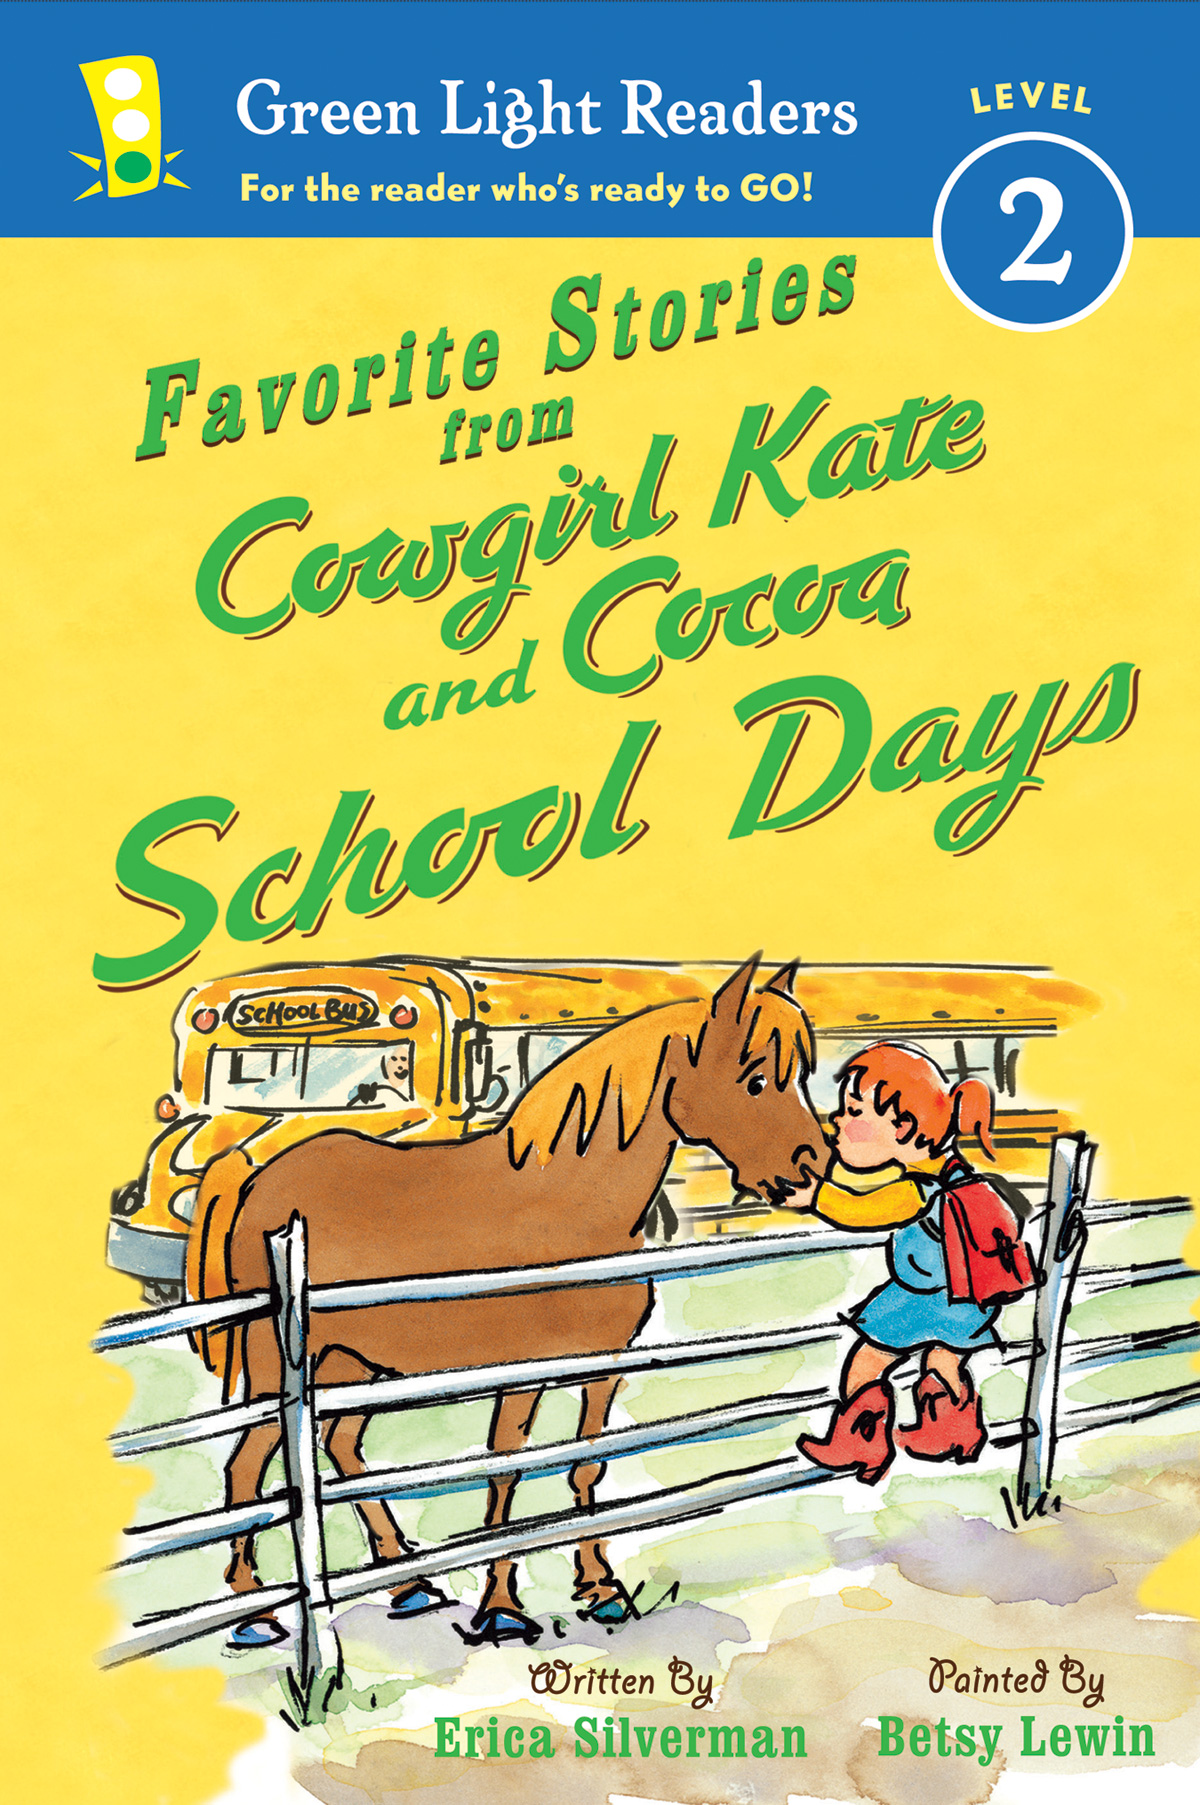 Favorite Stories from Cowgirl Kate and Cocoa: School Days-9780544230217